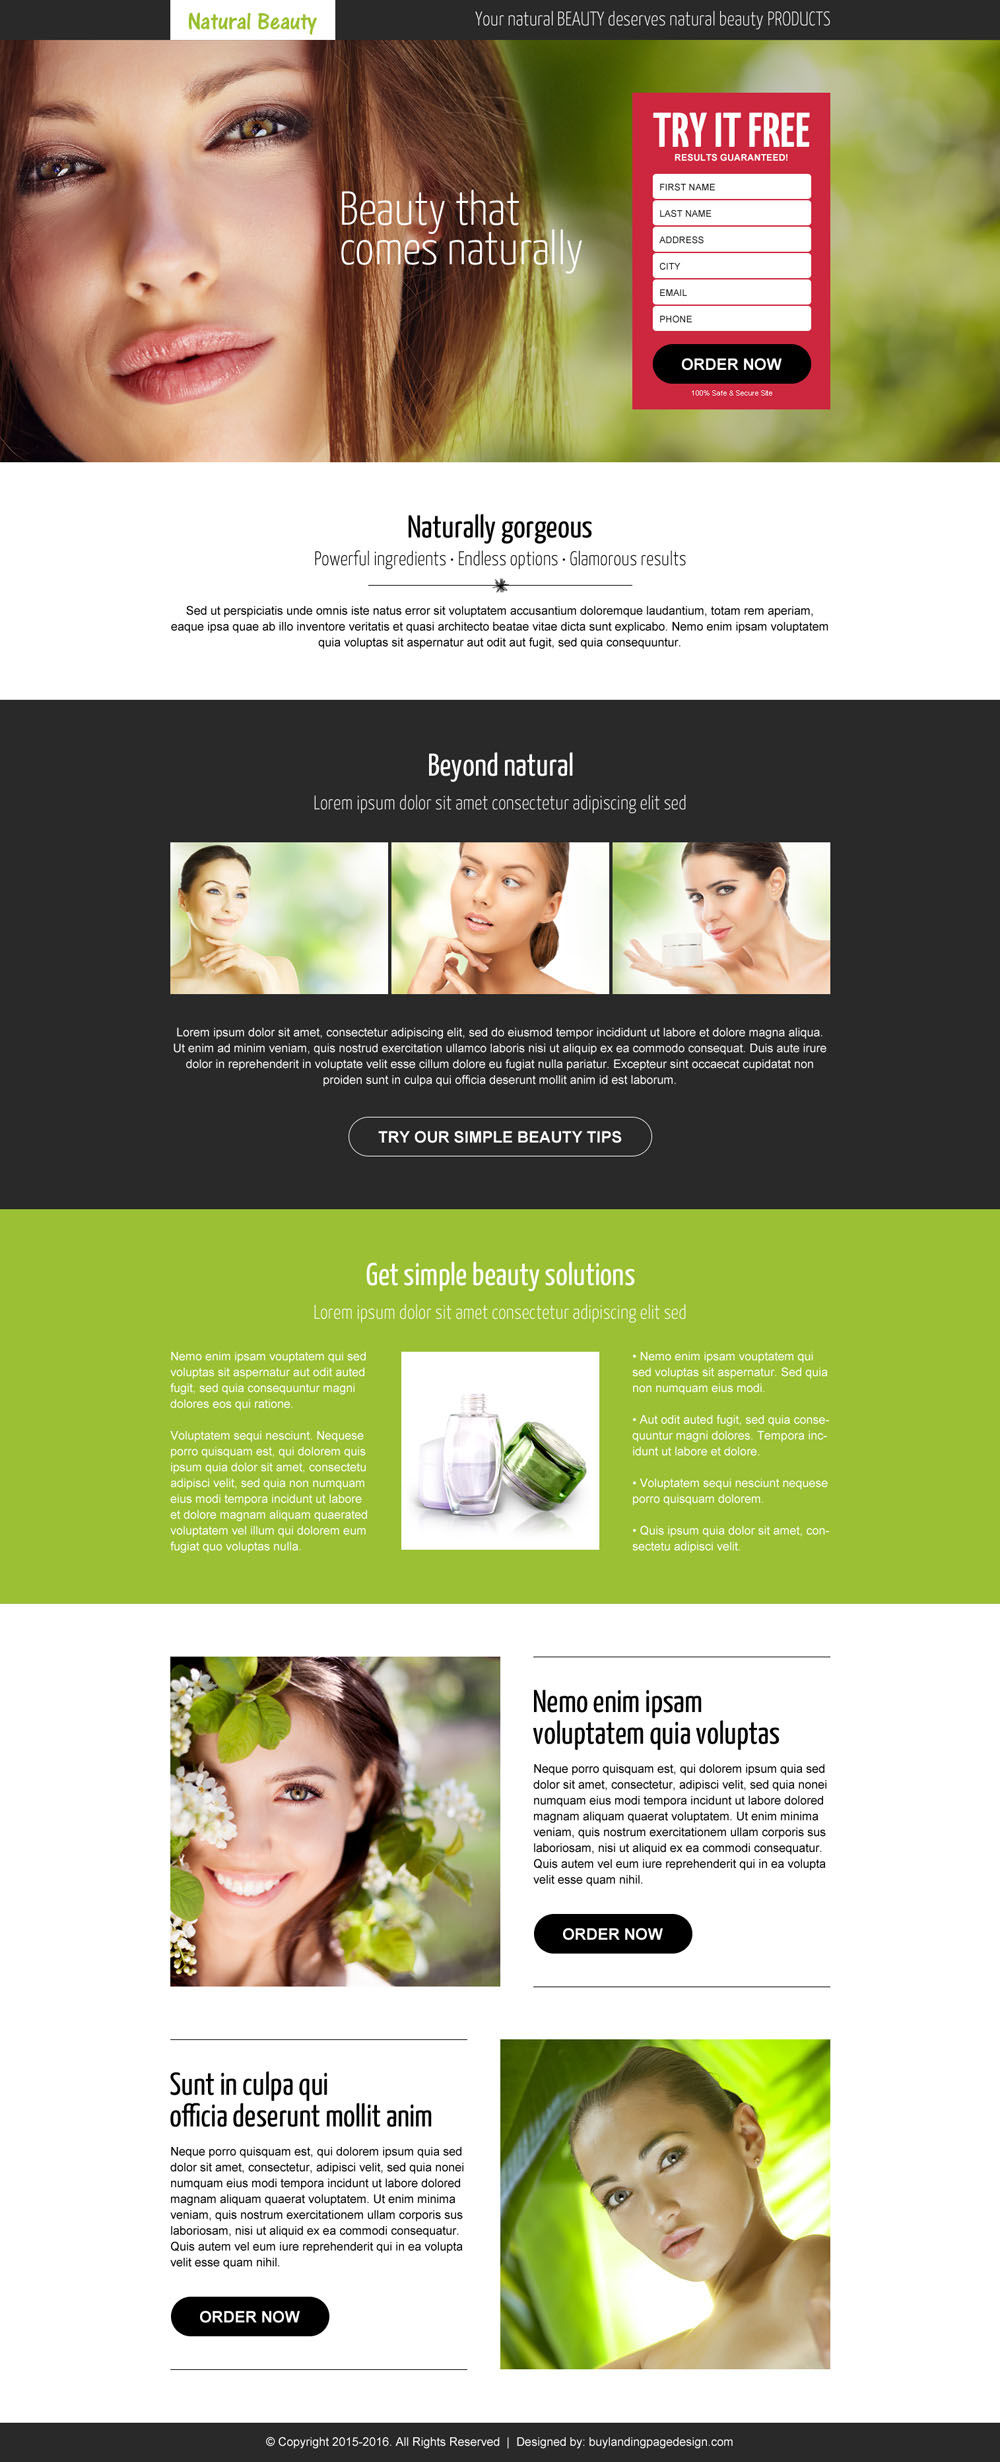 natural-beauty-product-lead-generation-converting-responsive-landing-page-design-003